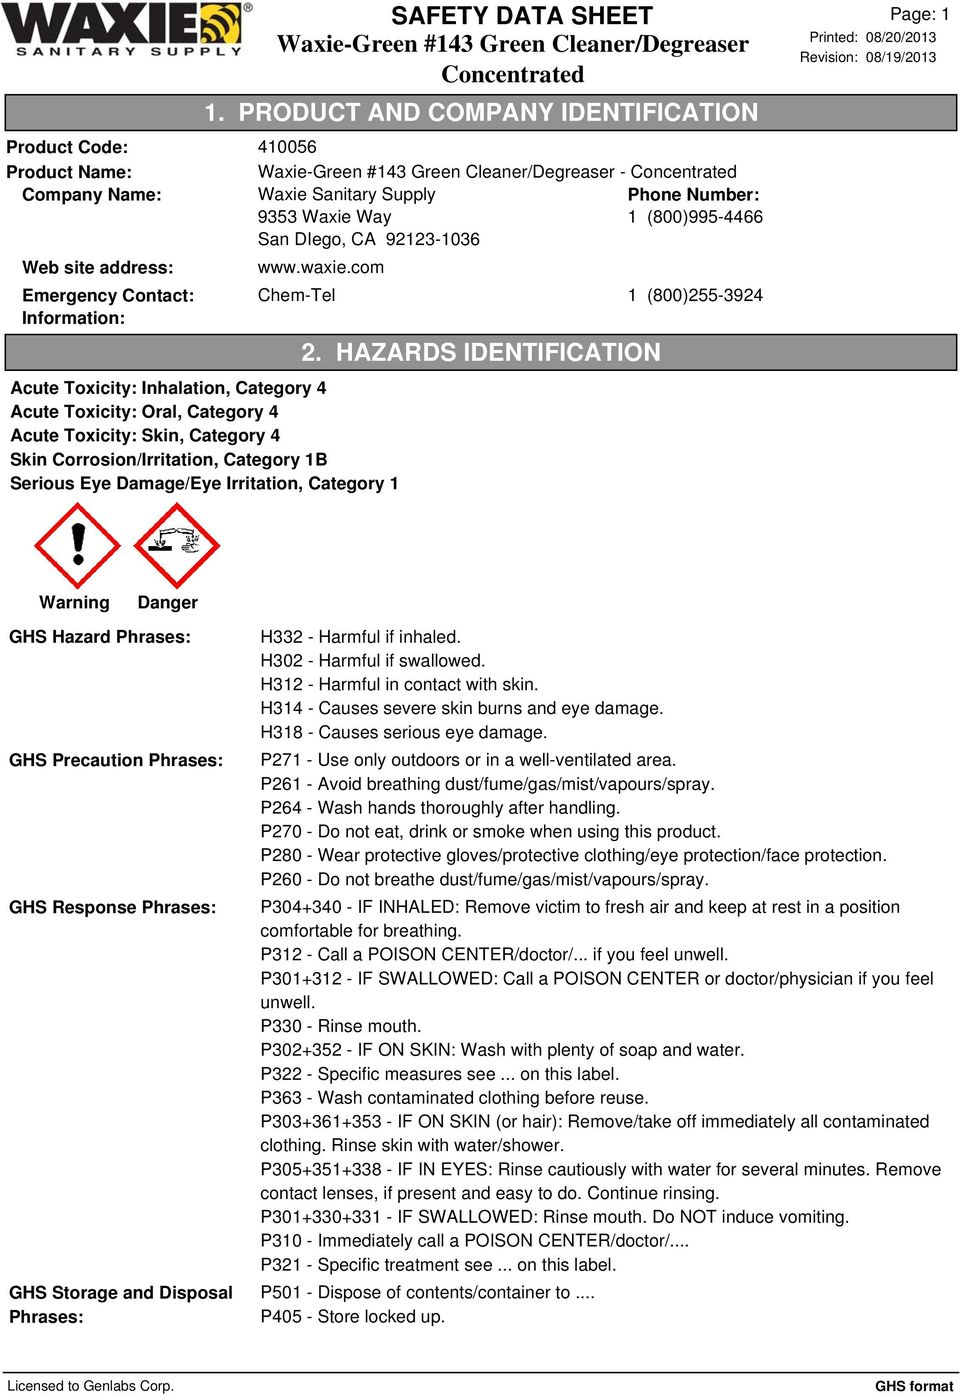 com Emergency Contact: Chem-Tel 1 (8)255-3924 Information: Acute Toxicity: Inhalation, Category 4 Acute Toxicity: Oral, Category 4 Acute Toxicity: Skin, Category 4 Skin Corrosion/Irritation, Category